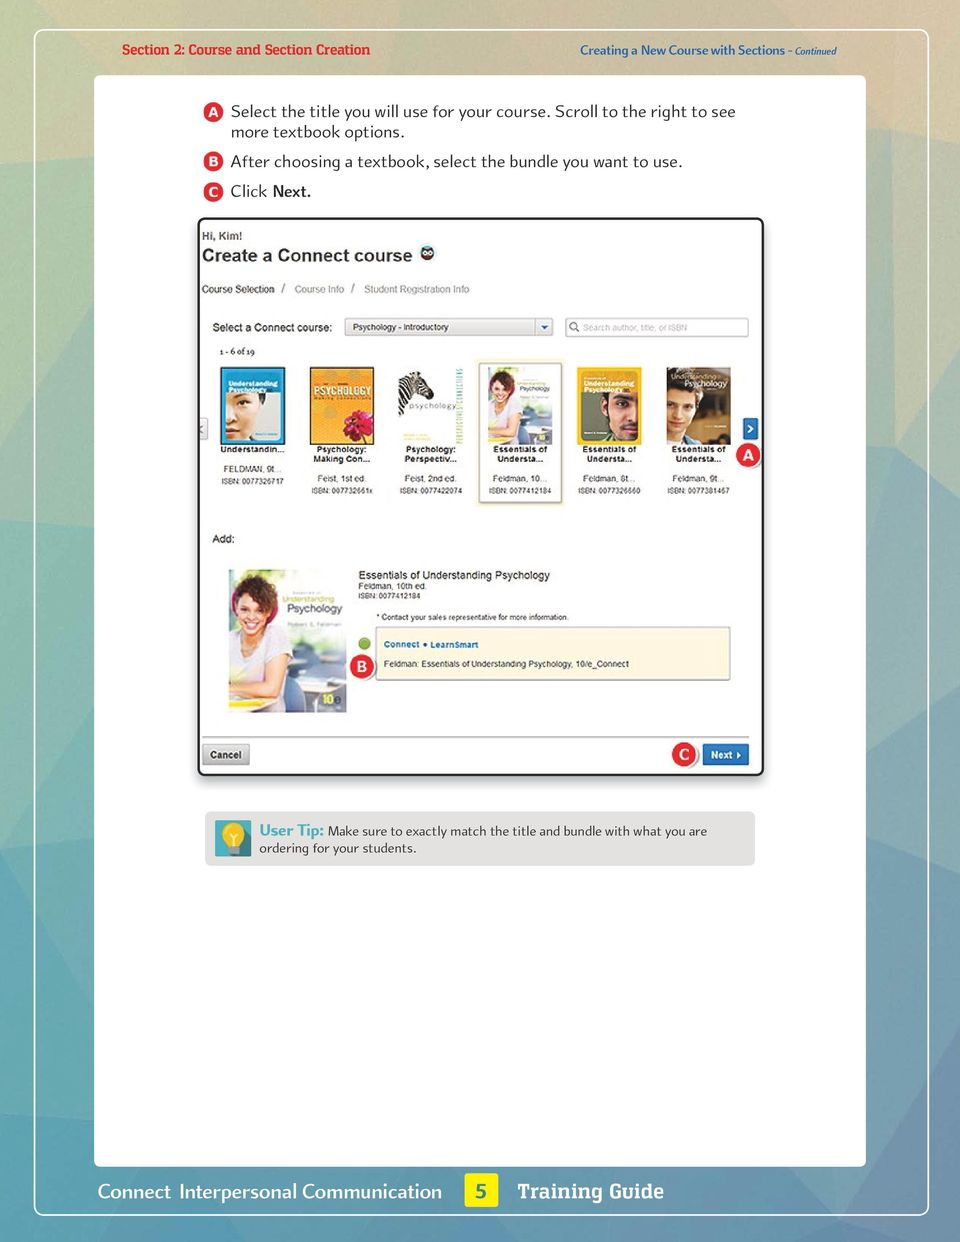 Scroll to the right to see more textbook options. B.